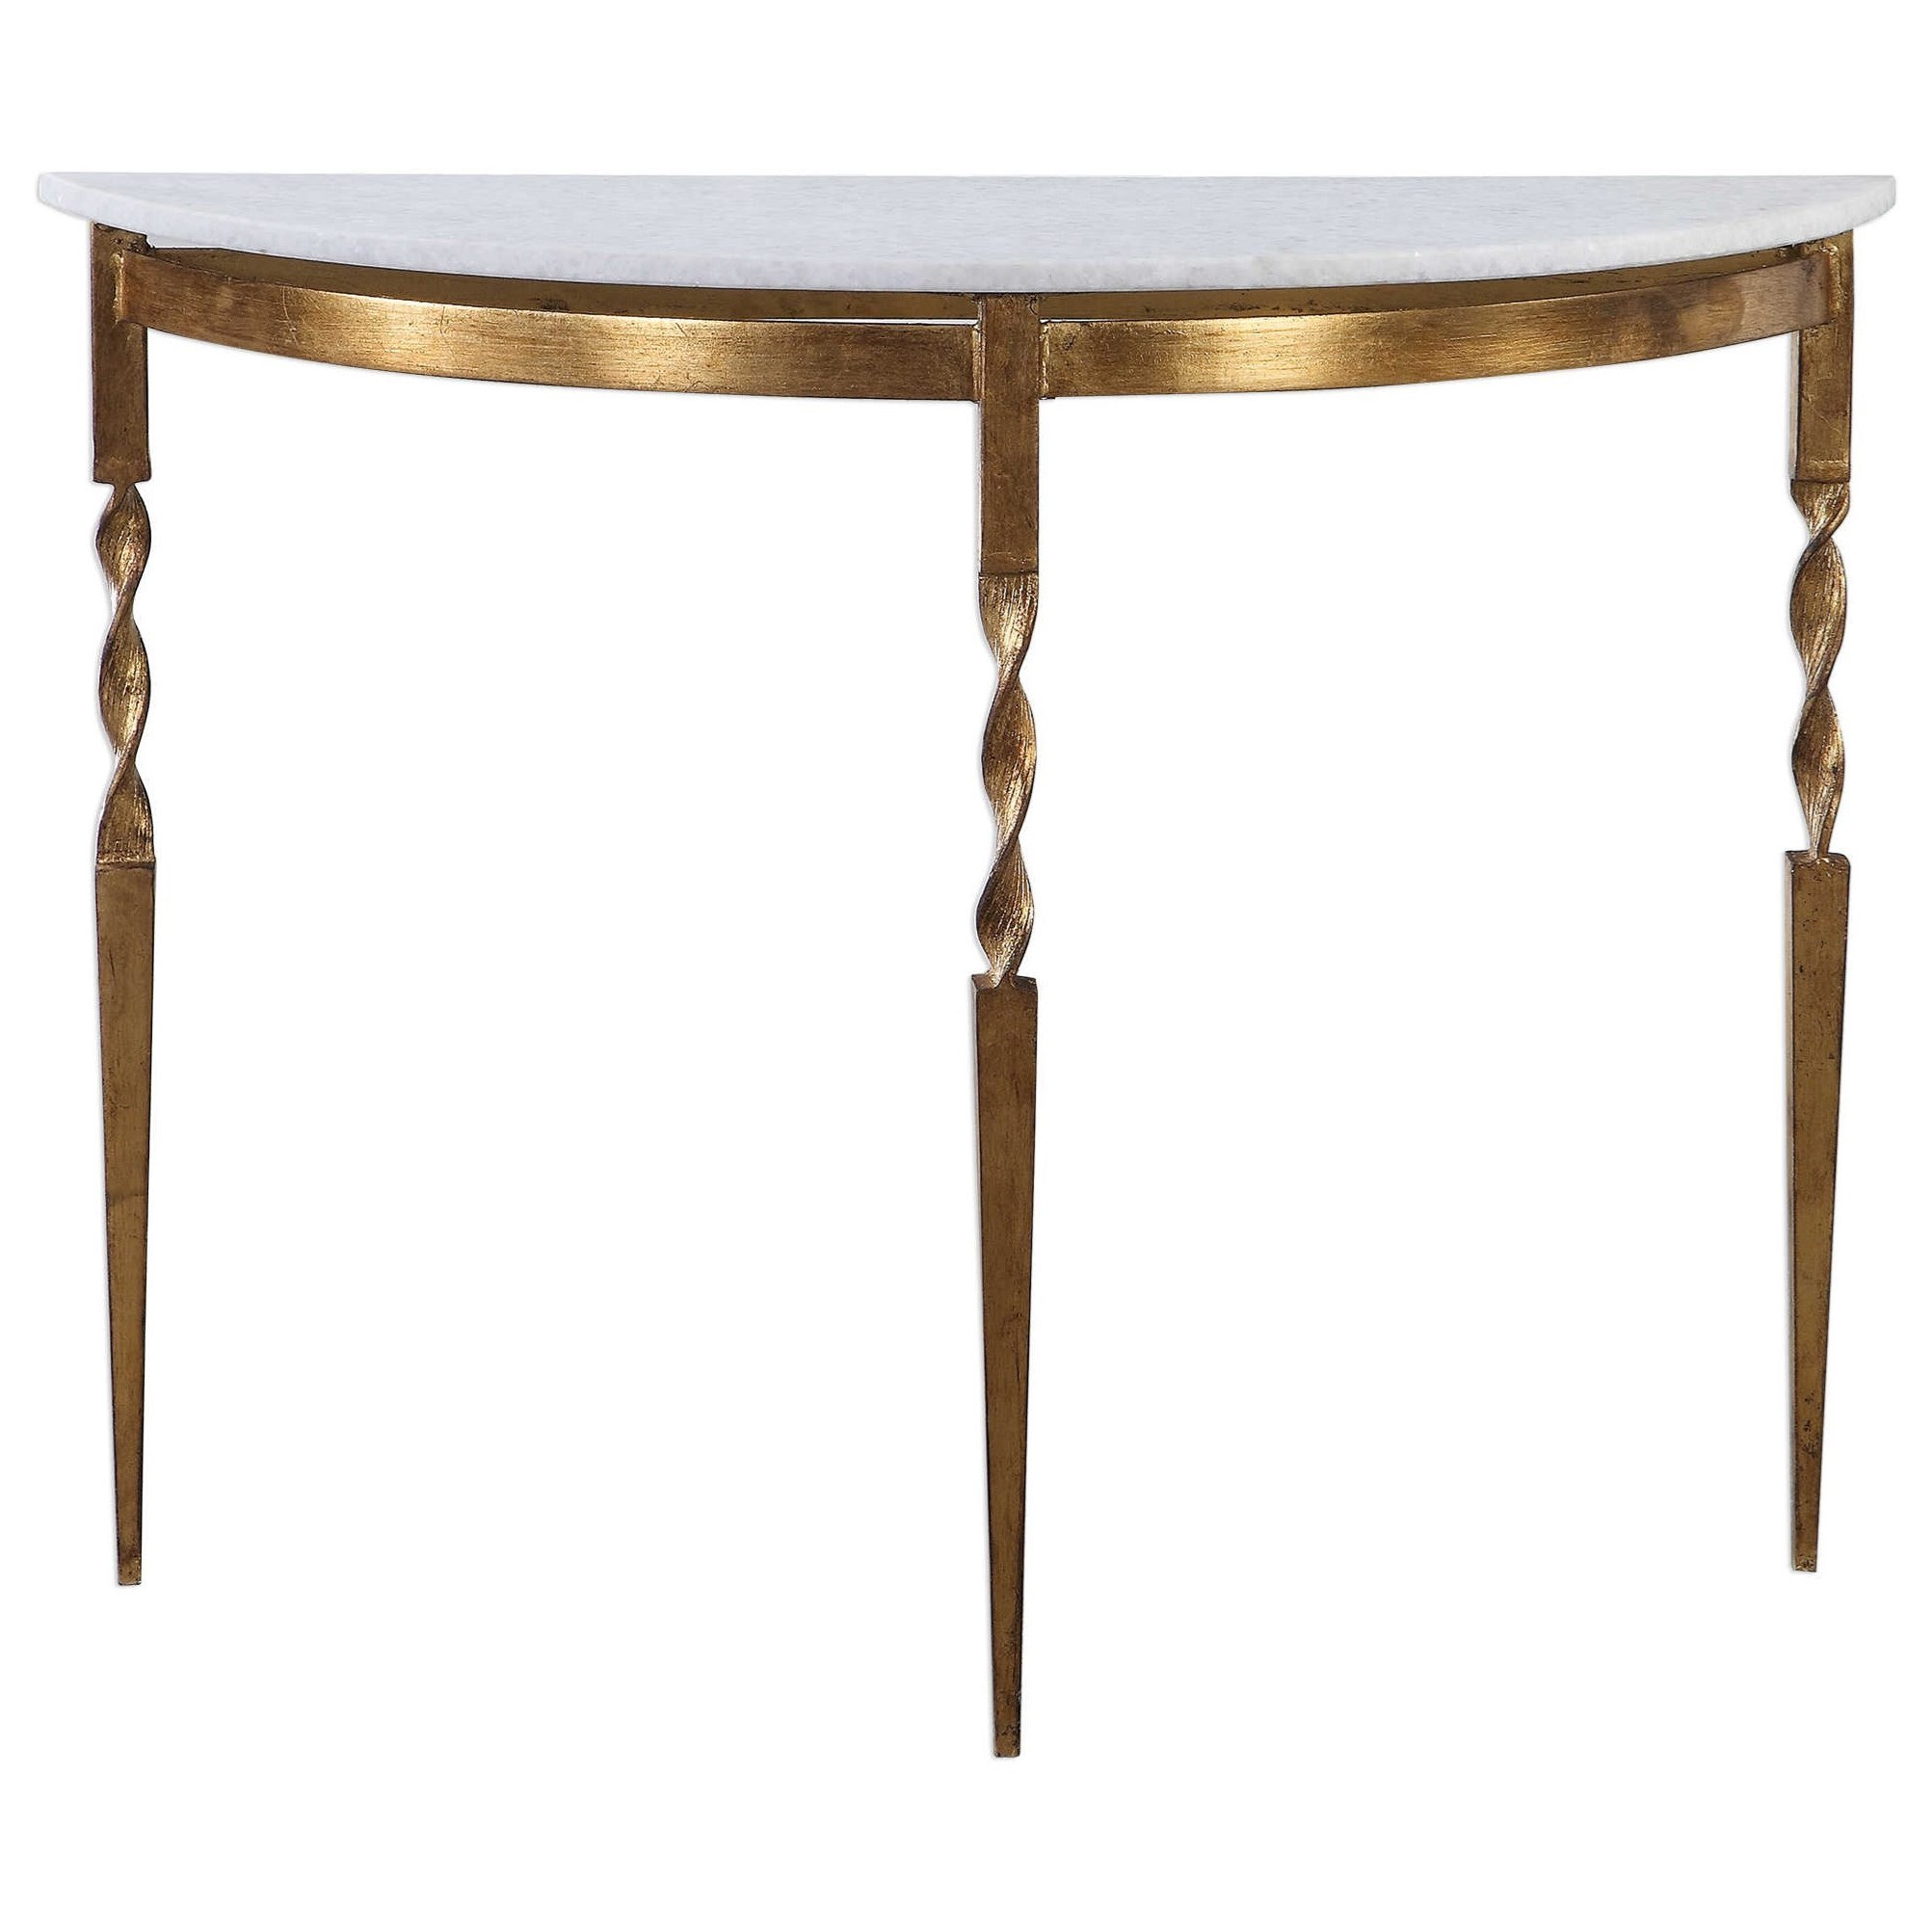 Accent Furniture - Occasional Tables Imelda Demilune Console Table by Uttermost at Goffena Furniture & Mattress Center